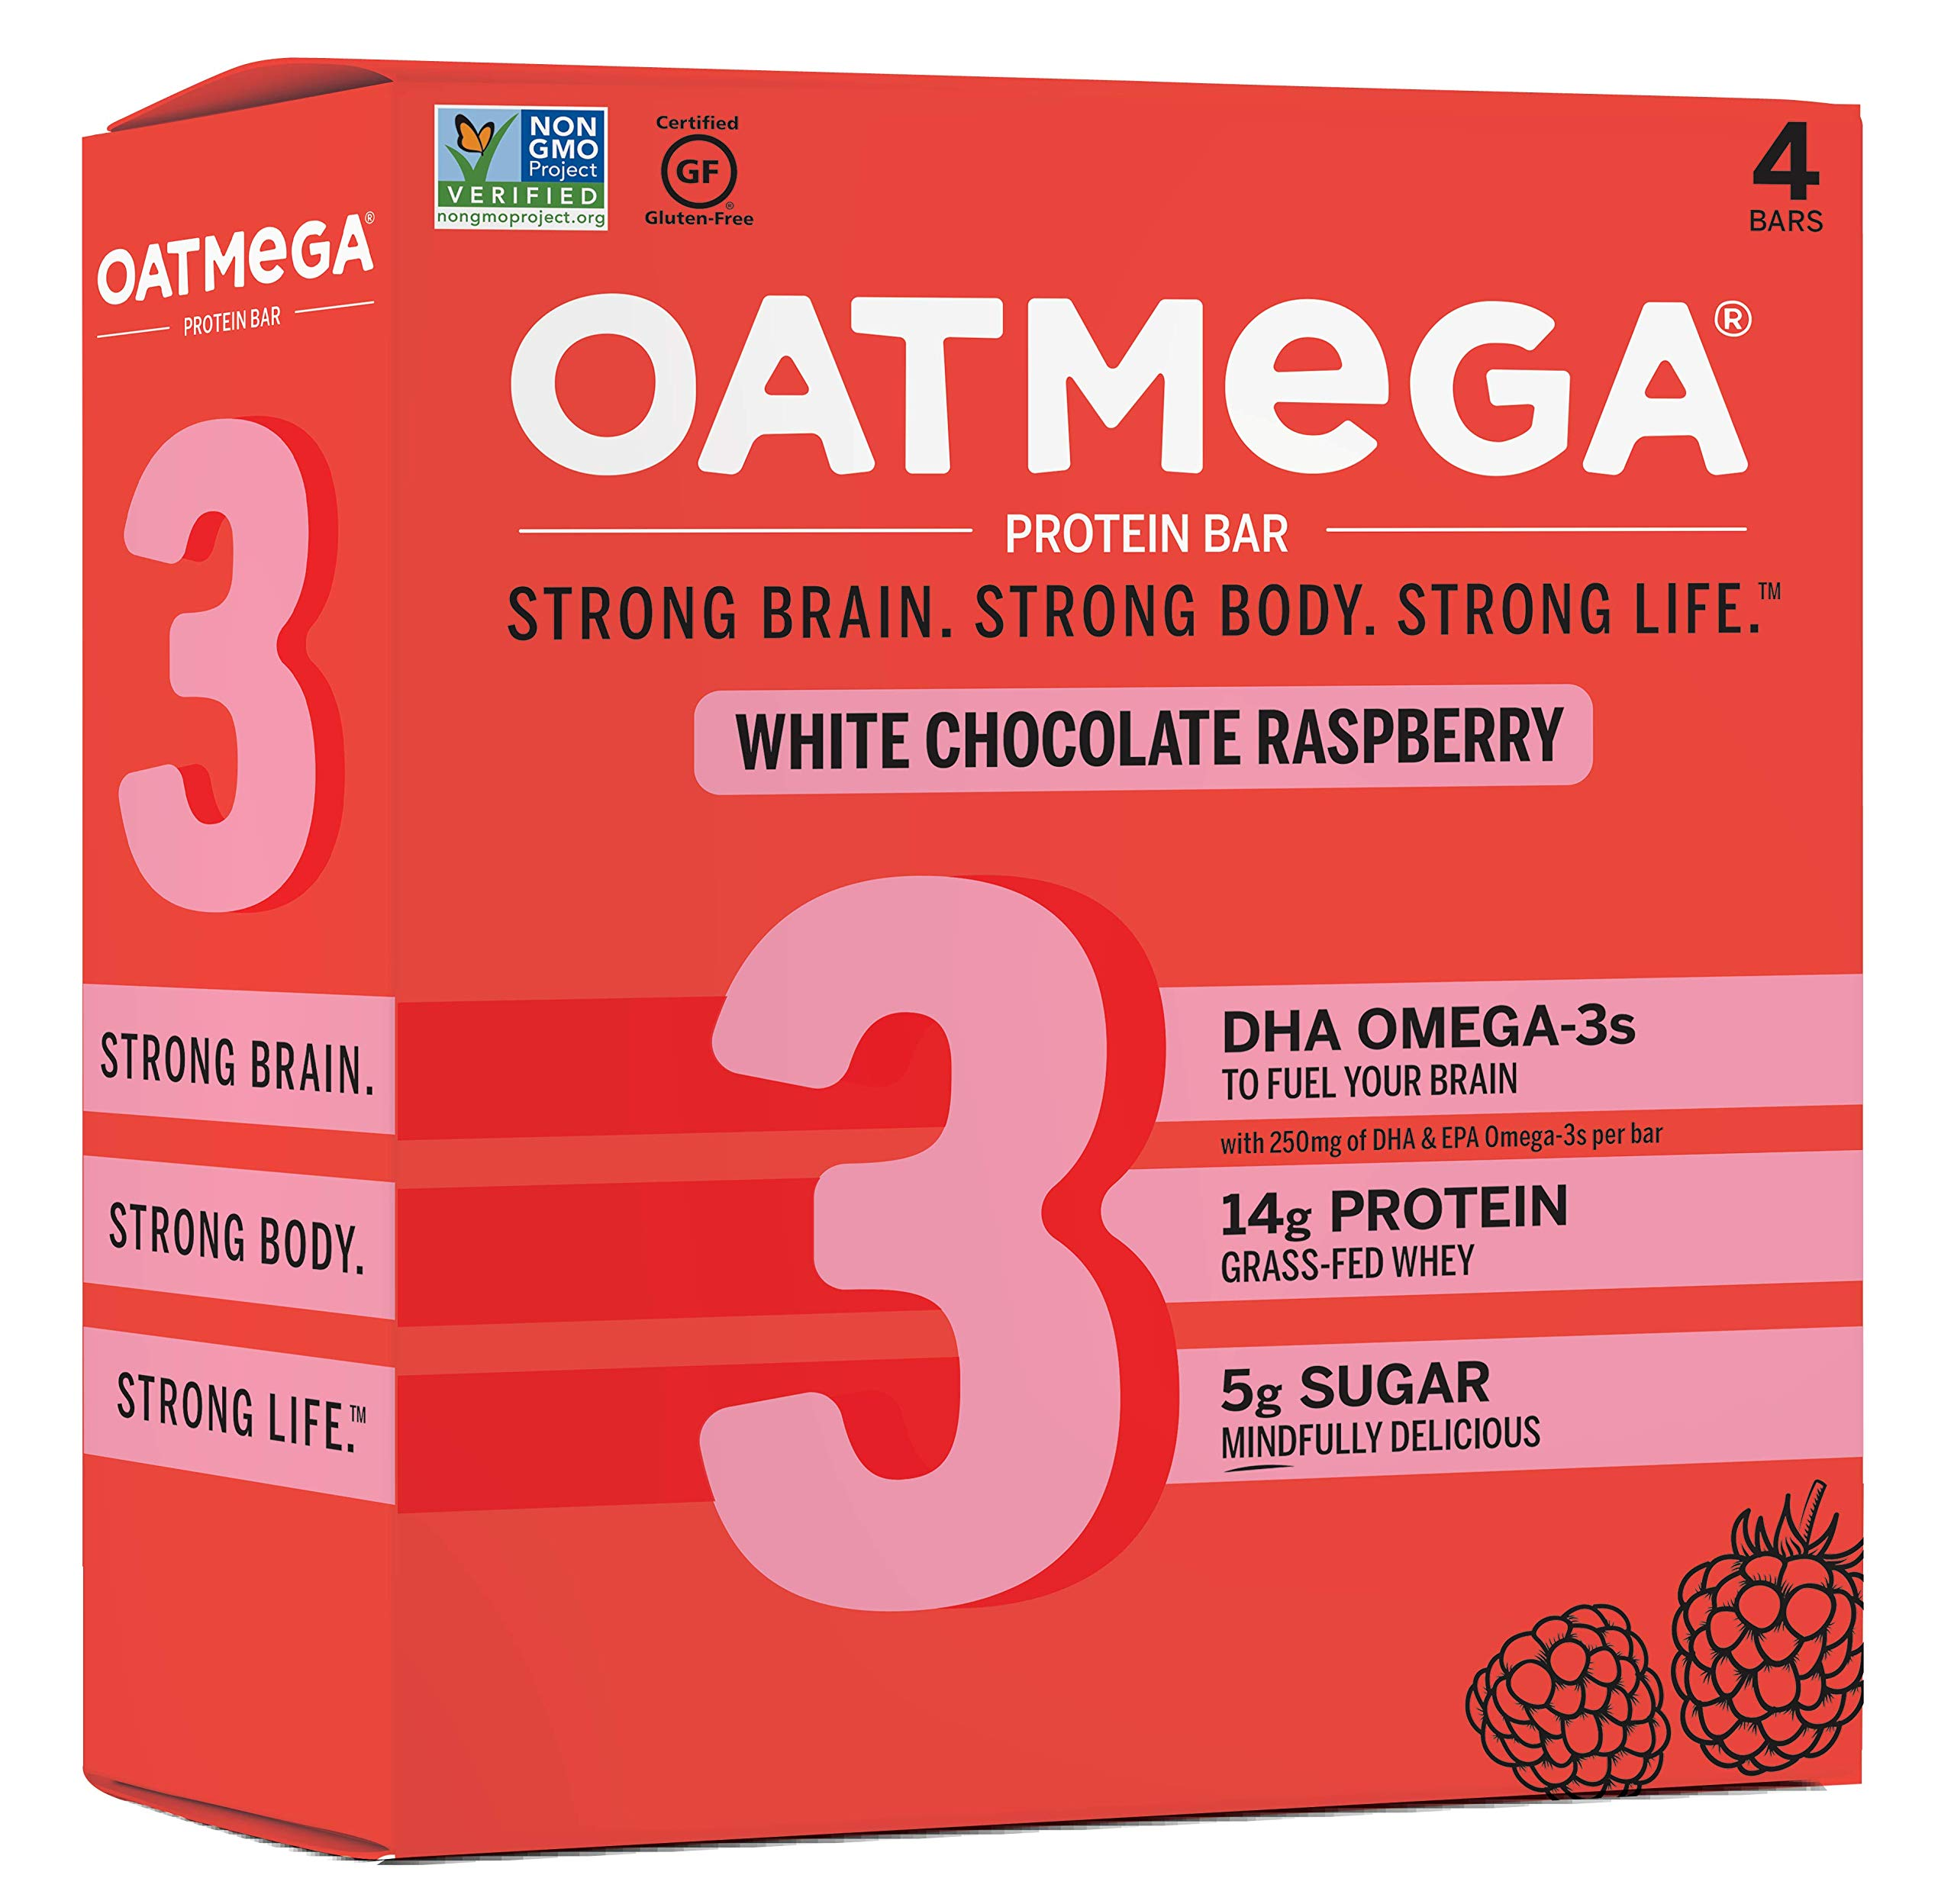 Oatmega Protein Bars, White Chocolate Raspberry, Healthy Snacks Made with Omega-3 and Grass-Fed Whey Protein, Gluten Free Protein Bars, 1.8oz (4 Count)